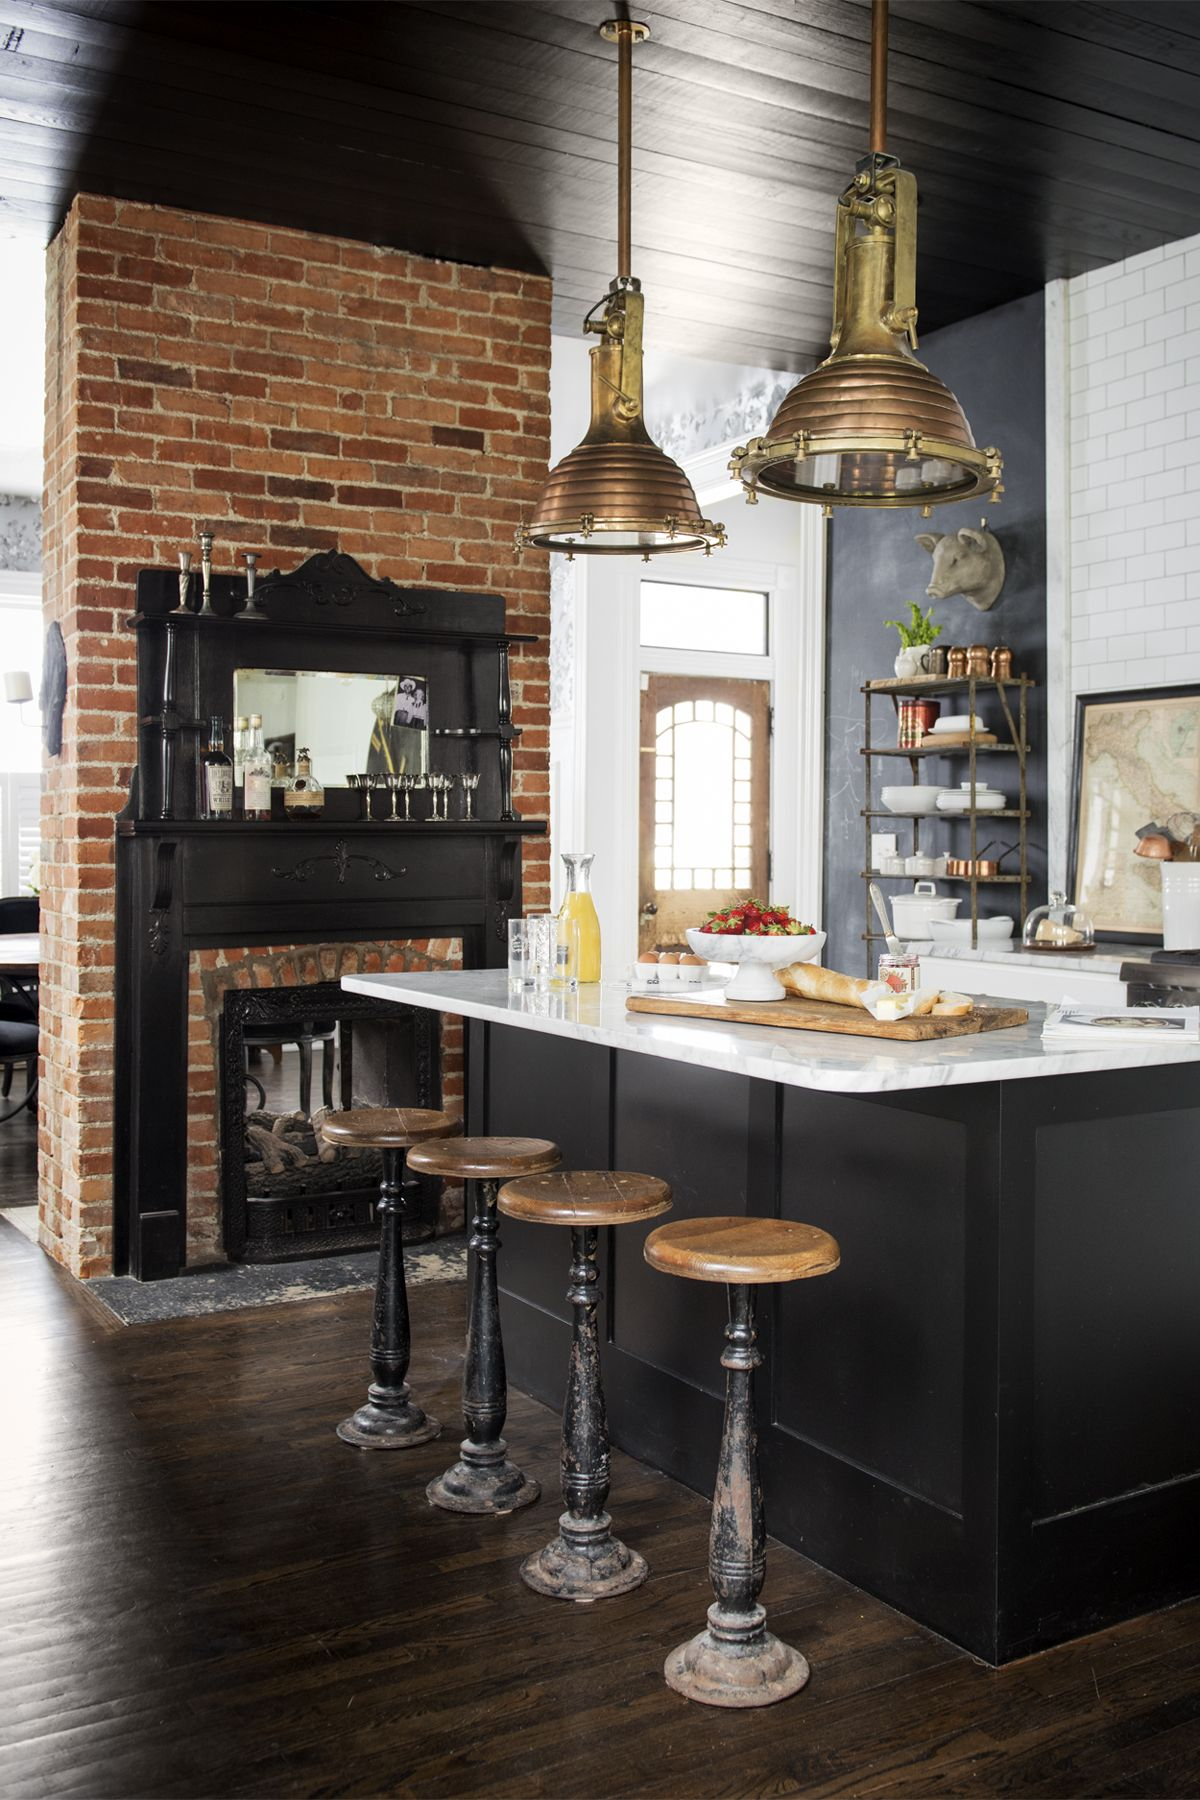 Black Kitchens Are the New White Kitchens  Black Kitchen Cabinets and More